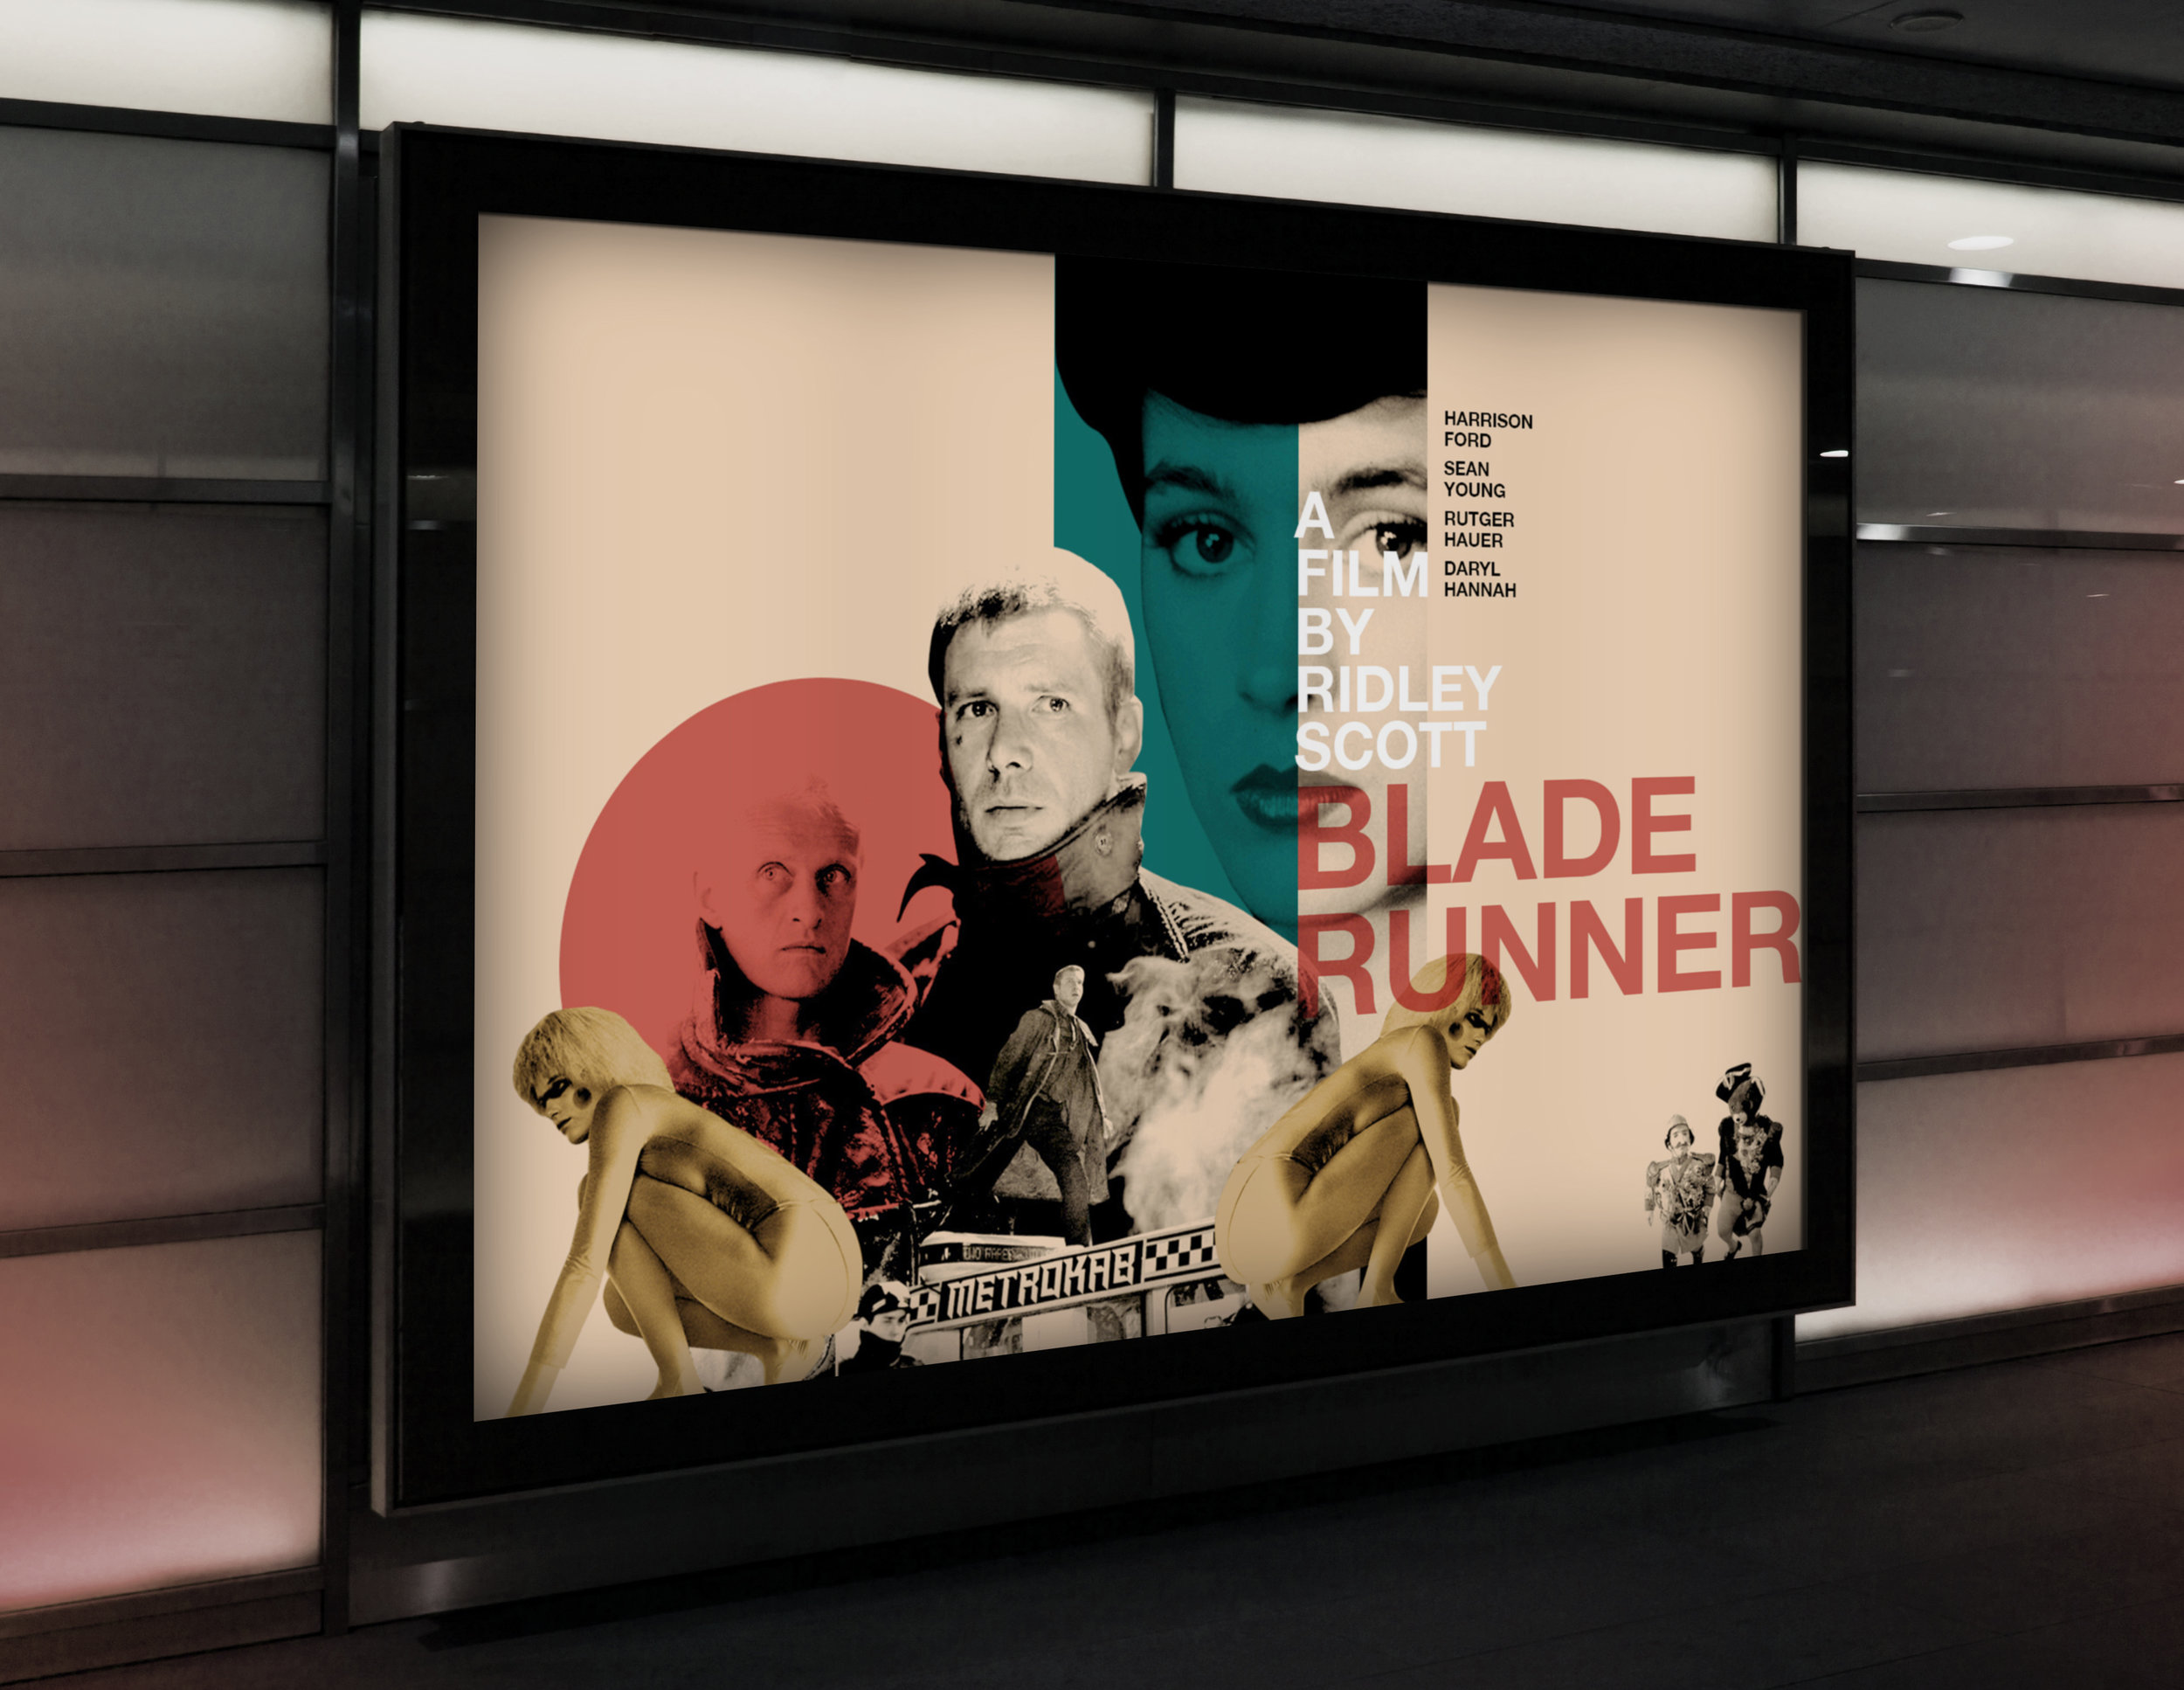 Blade Runner   billboard, 2017 (student work)